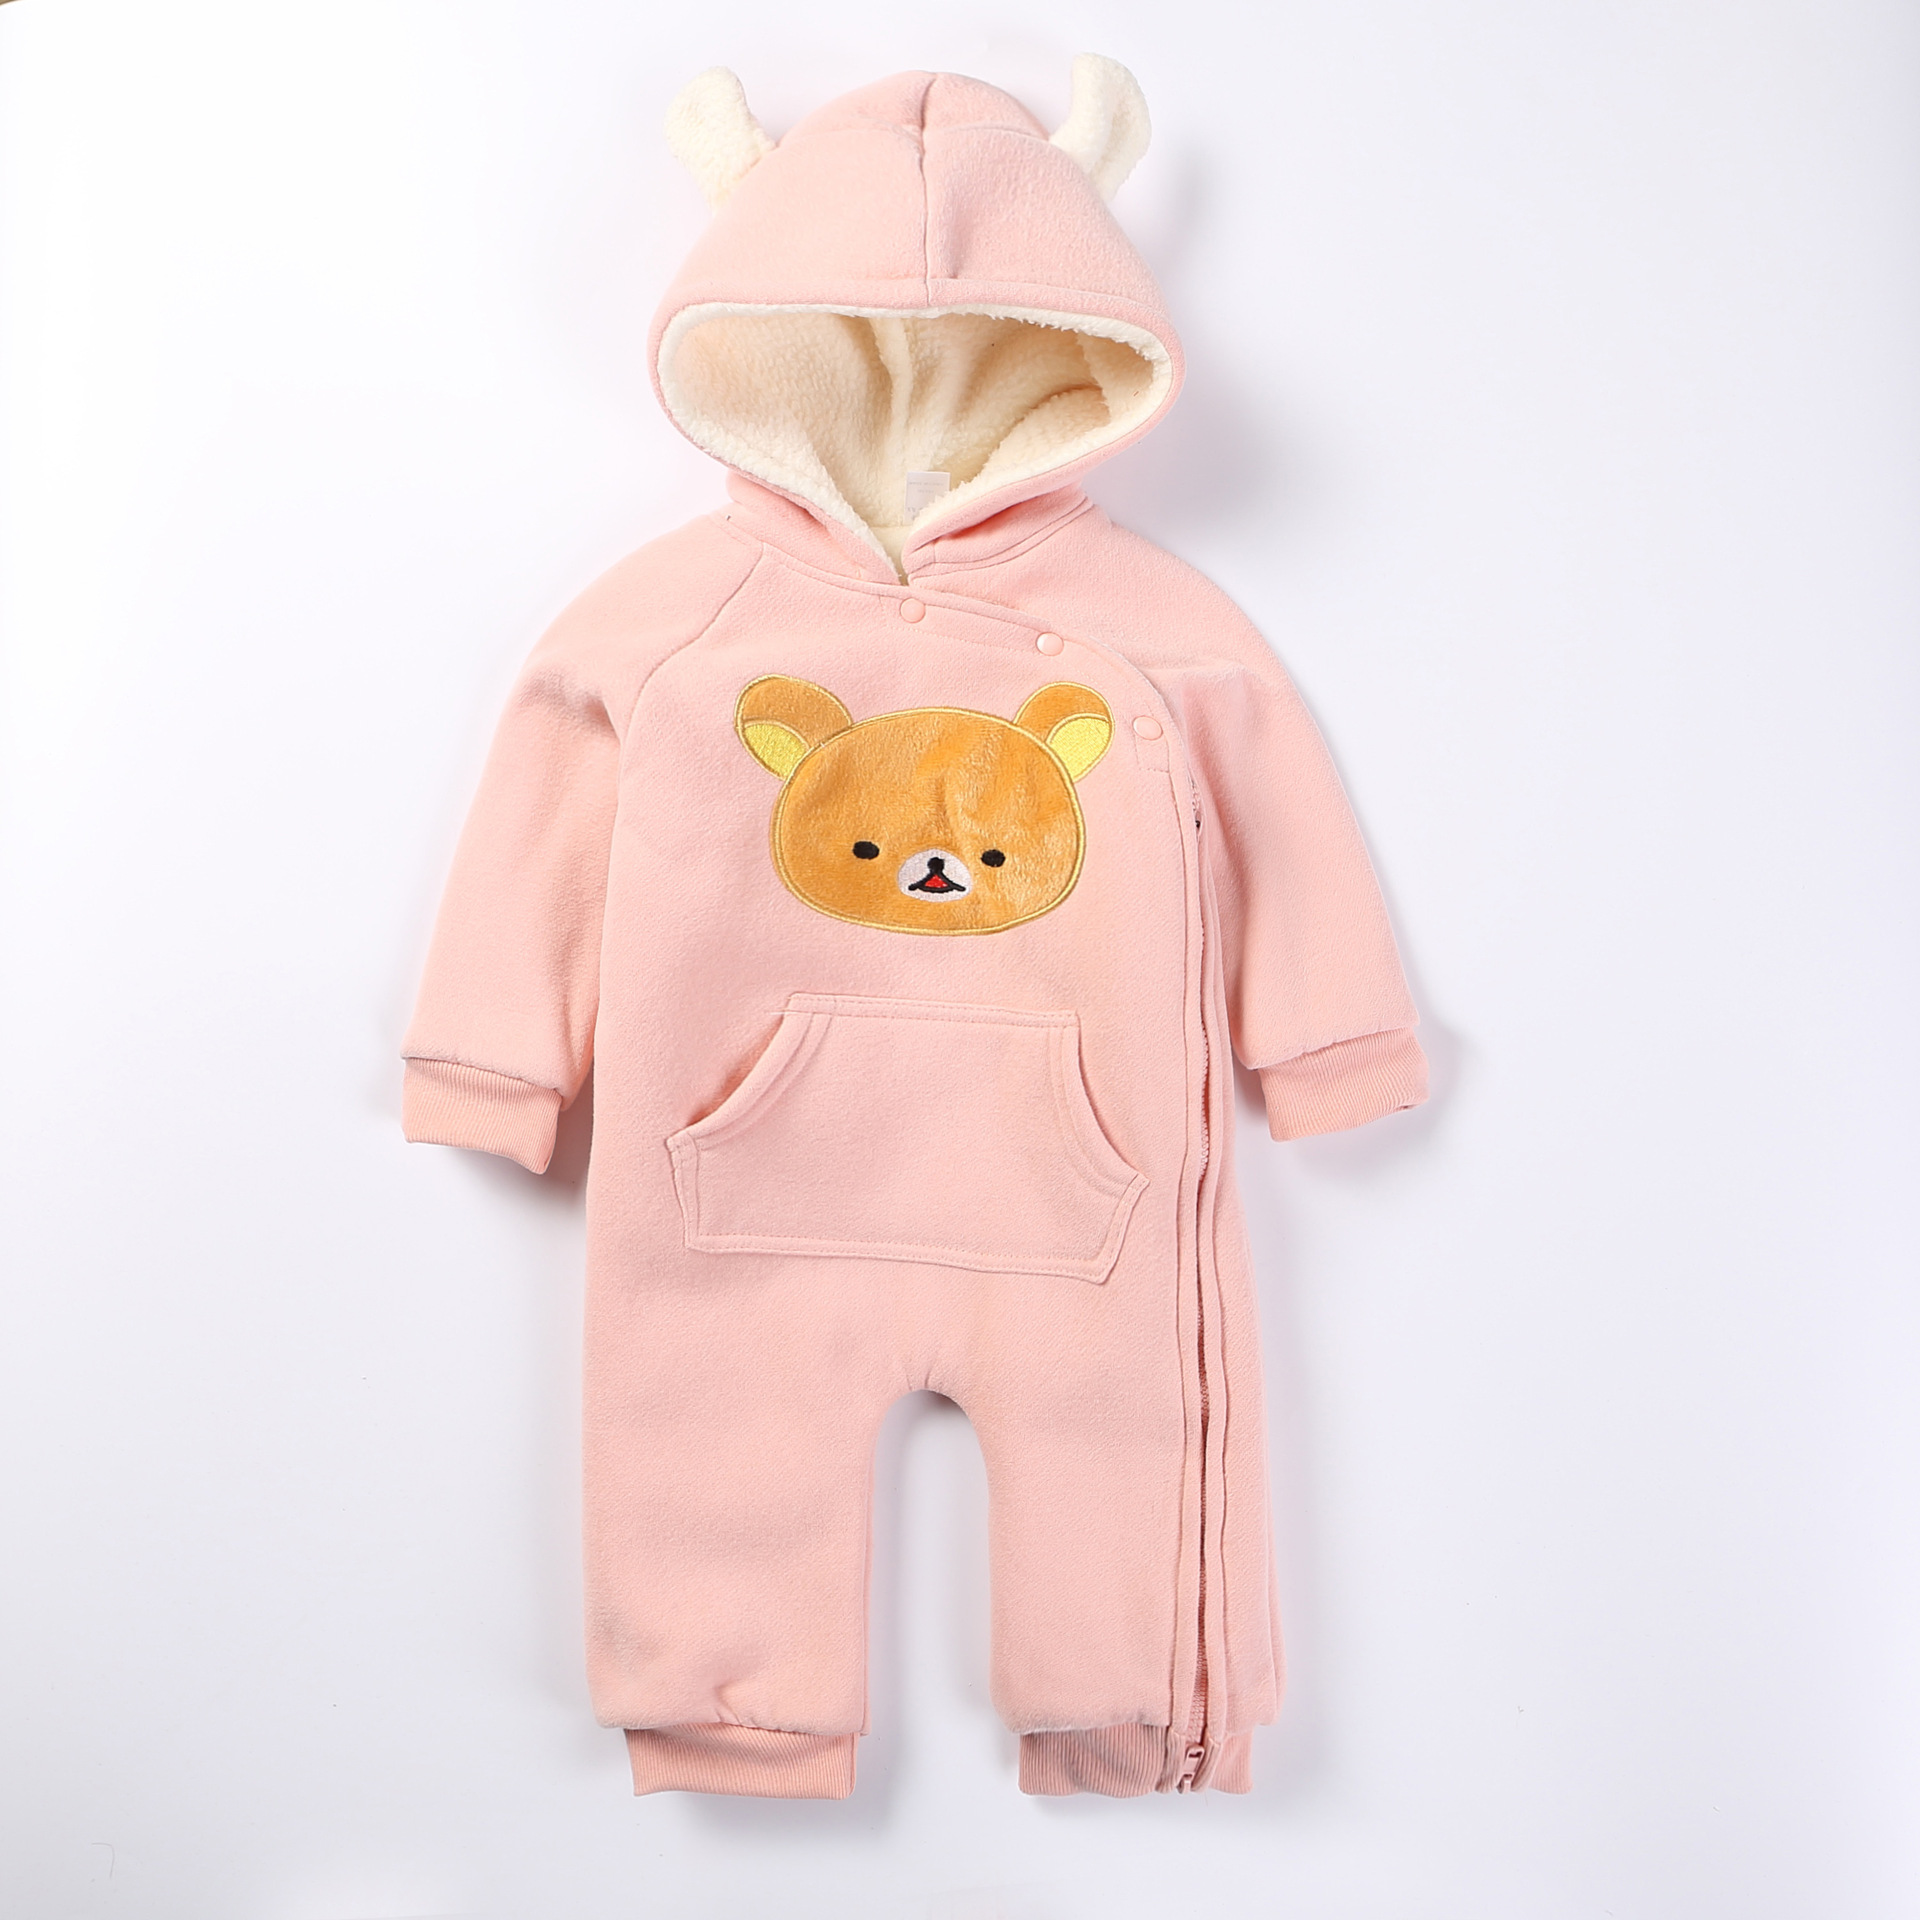 3e1dfcc4a4f6 sleek cd9f4 155b0 polar fleece infant romper clothes baby boy girl ...